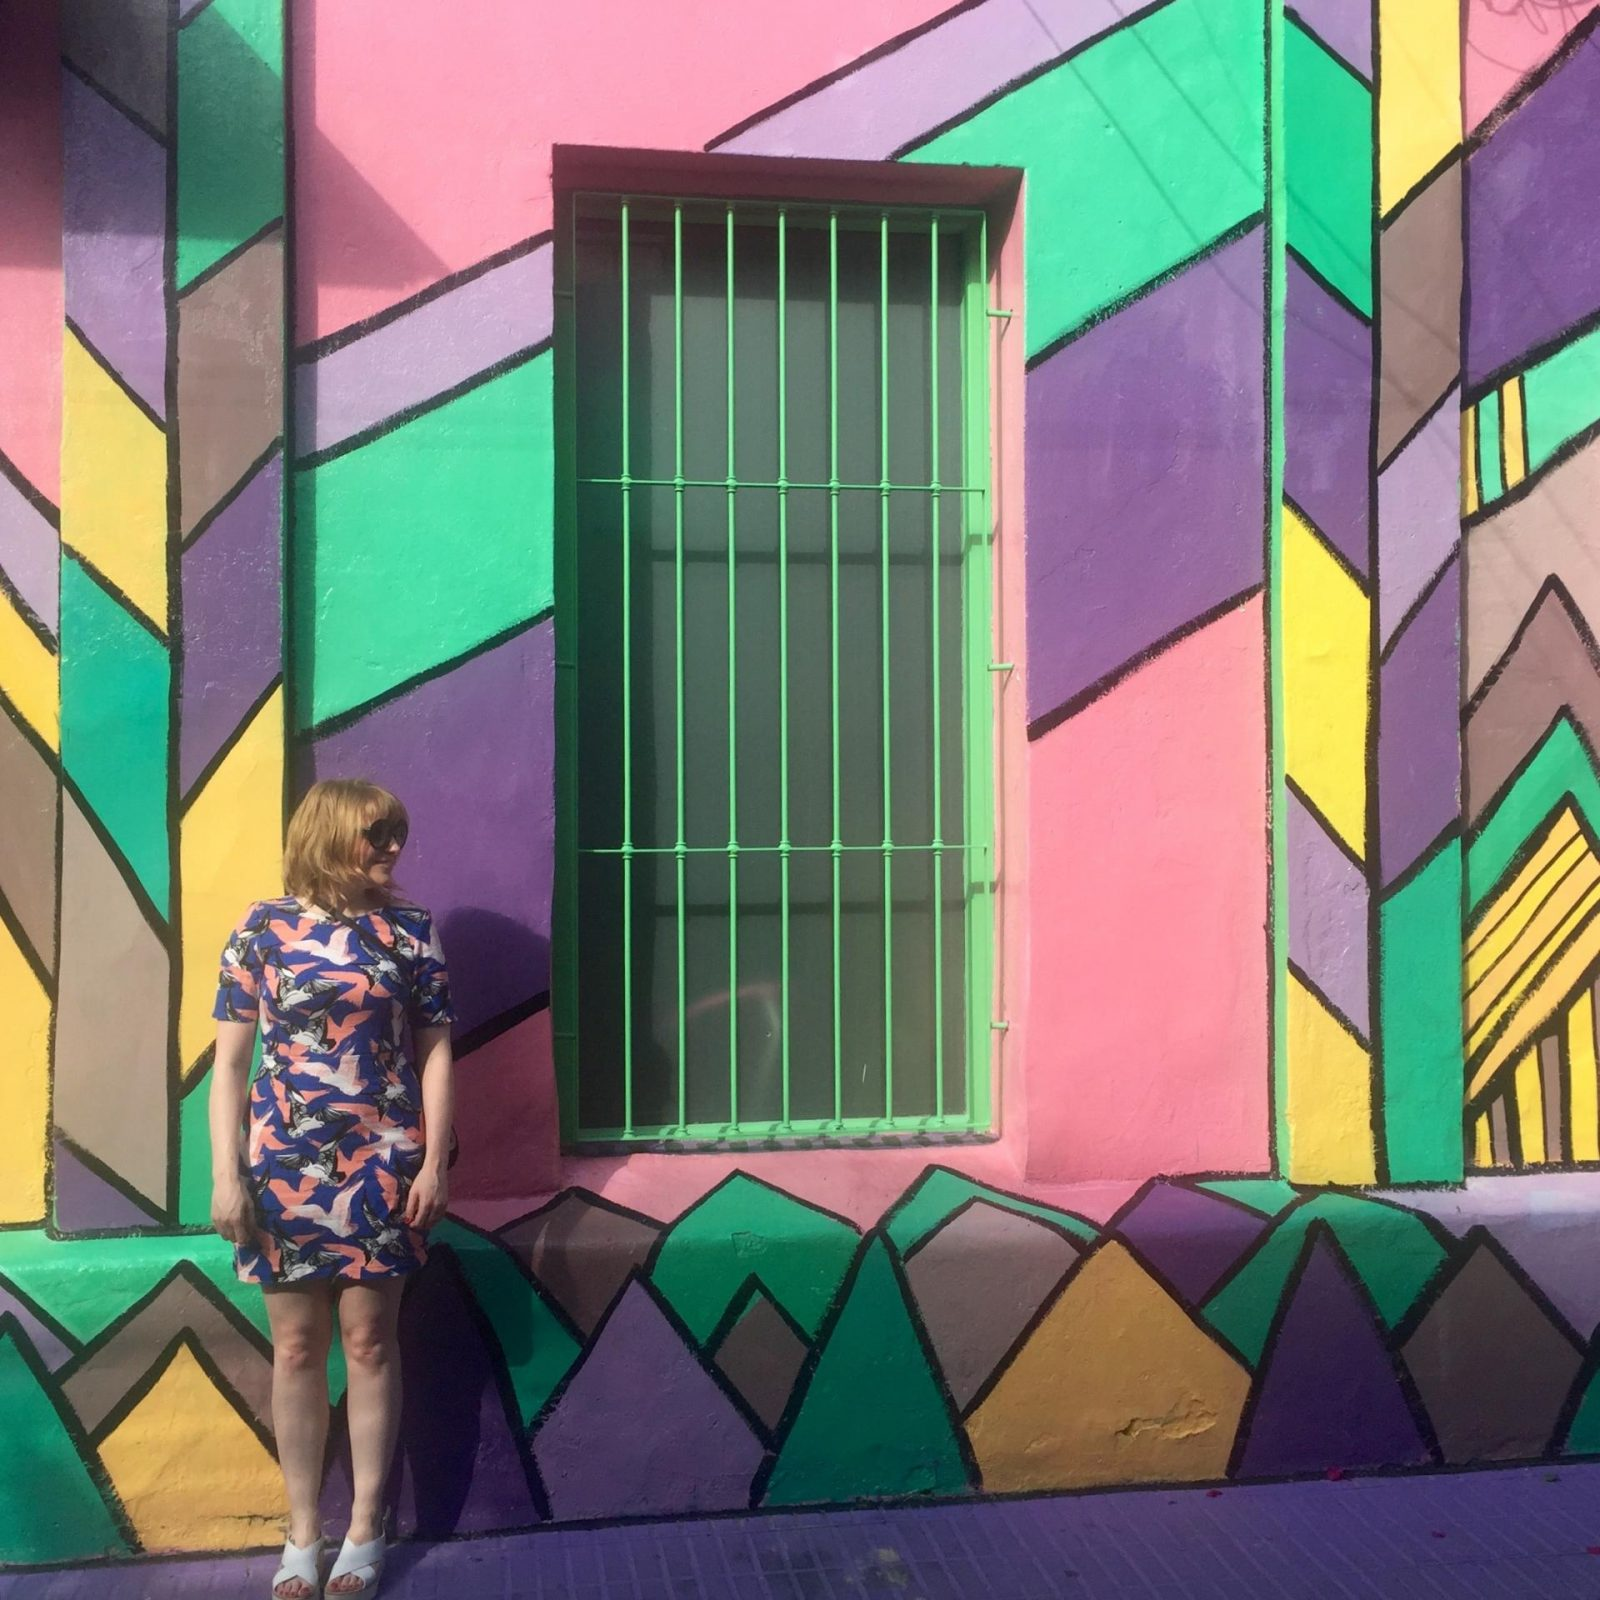 Sarah Powell on Buenos Aires